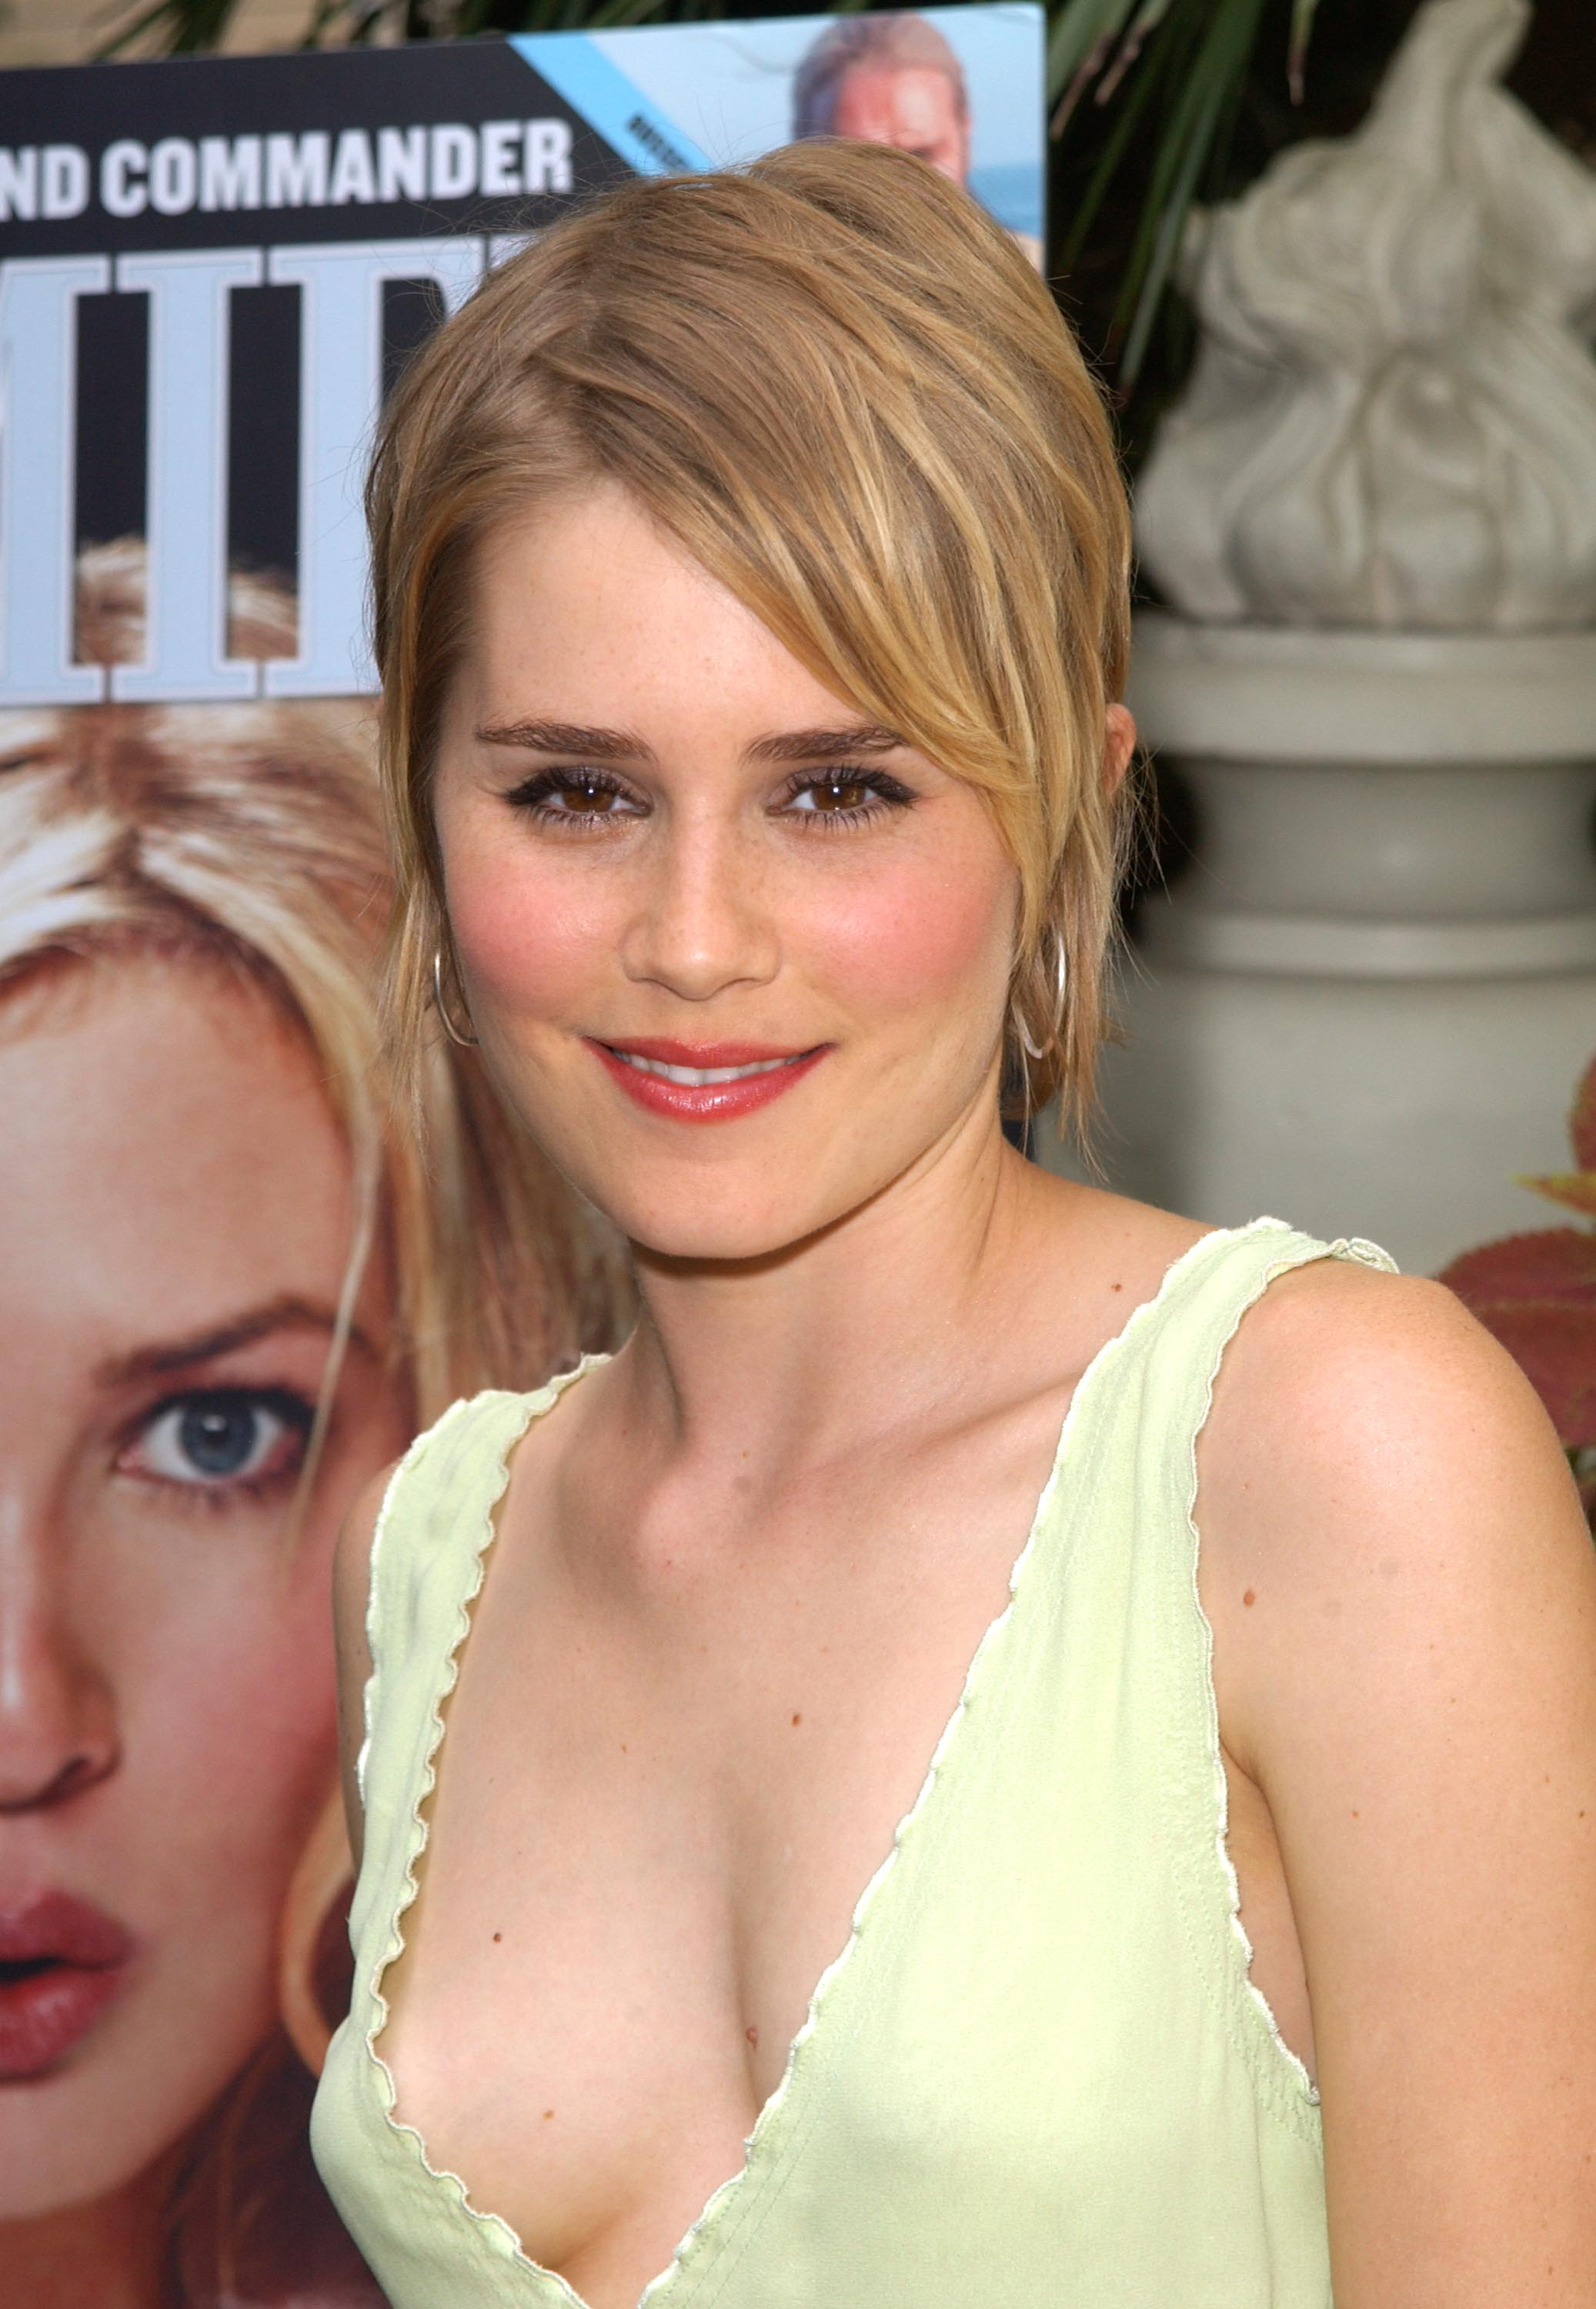 alison lohman dating It stars sons of anarchy's kim coates as the unstoppable titular officer and features a cast that includes alison lohman (drag me to hell) and lauren vélez and start writing new music – because we want to write, crahan adds – and they'll leave the date they actually go back into the studio up in the air.